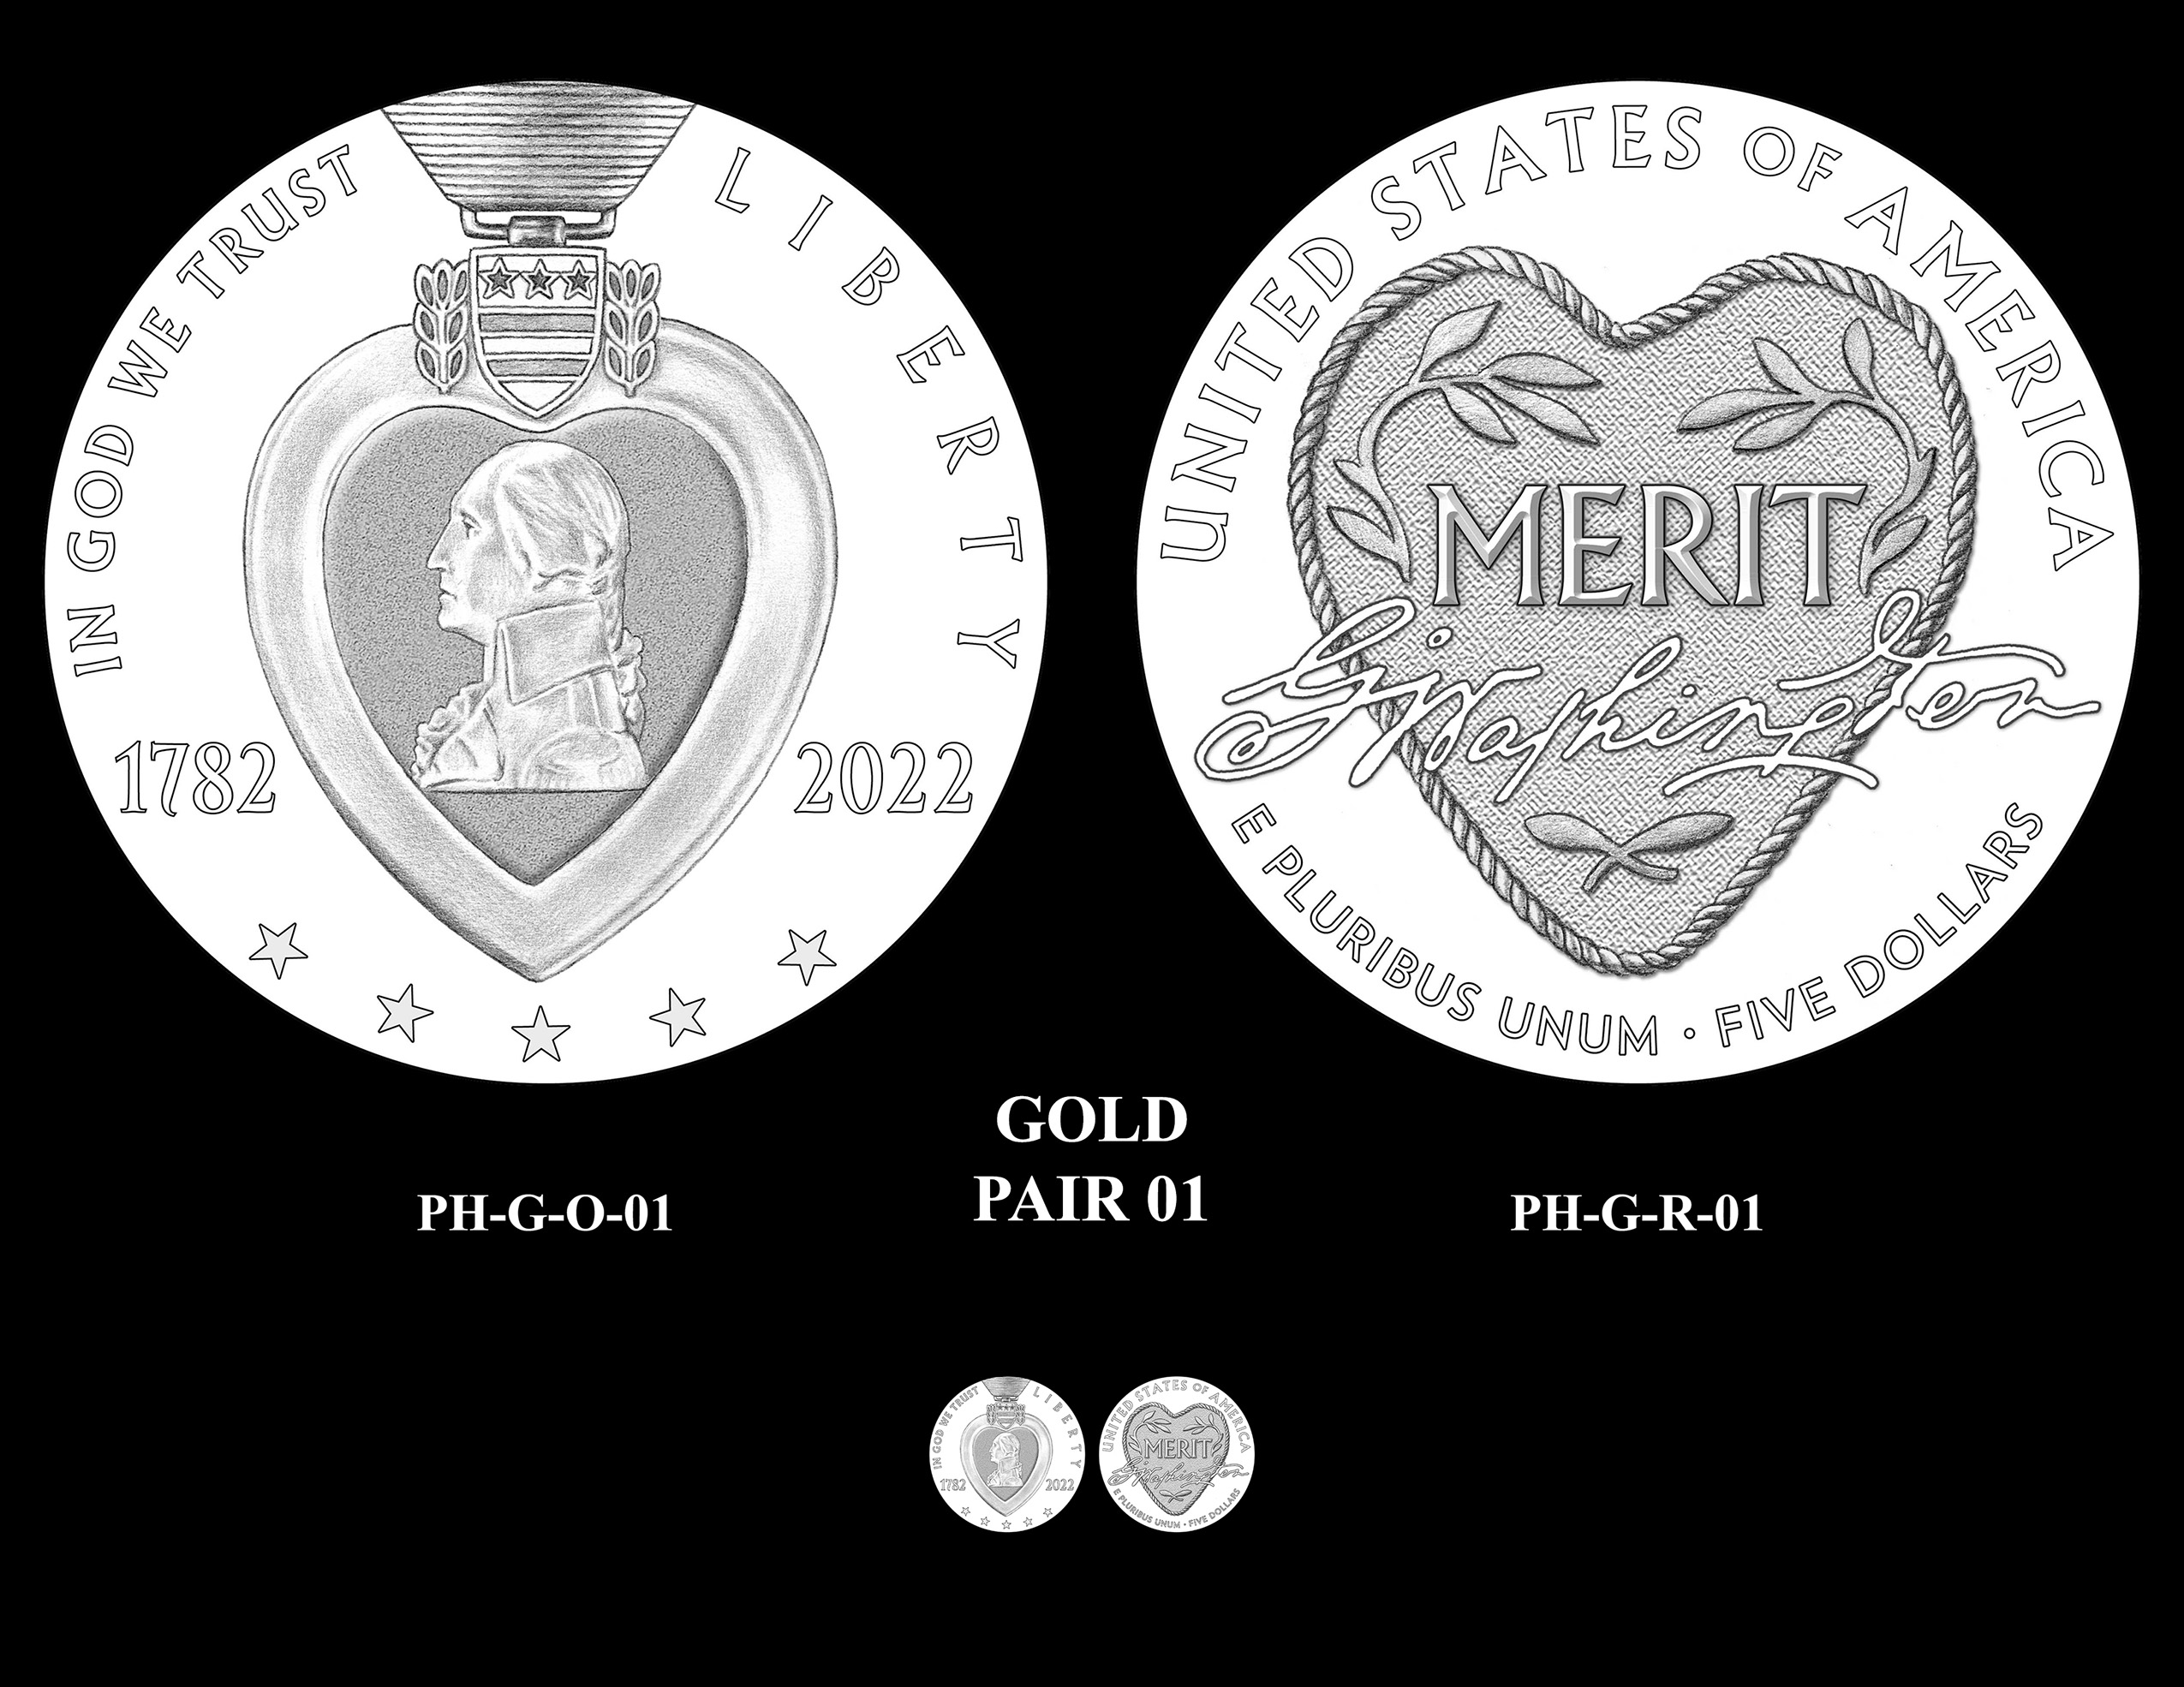 Gold Pair 01 -- National Purple Heart Hall of Honor Commemorative Coin Program